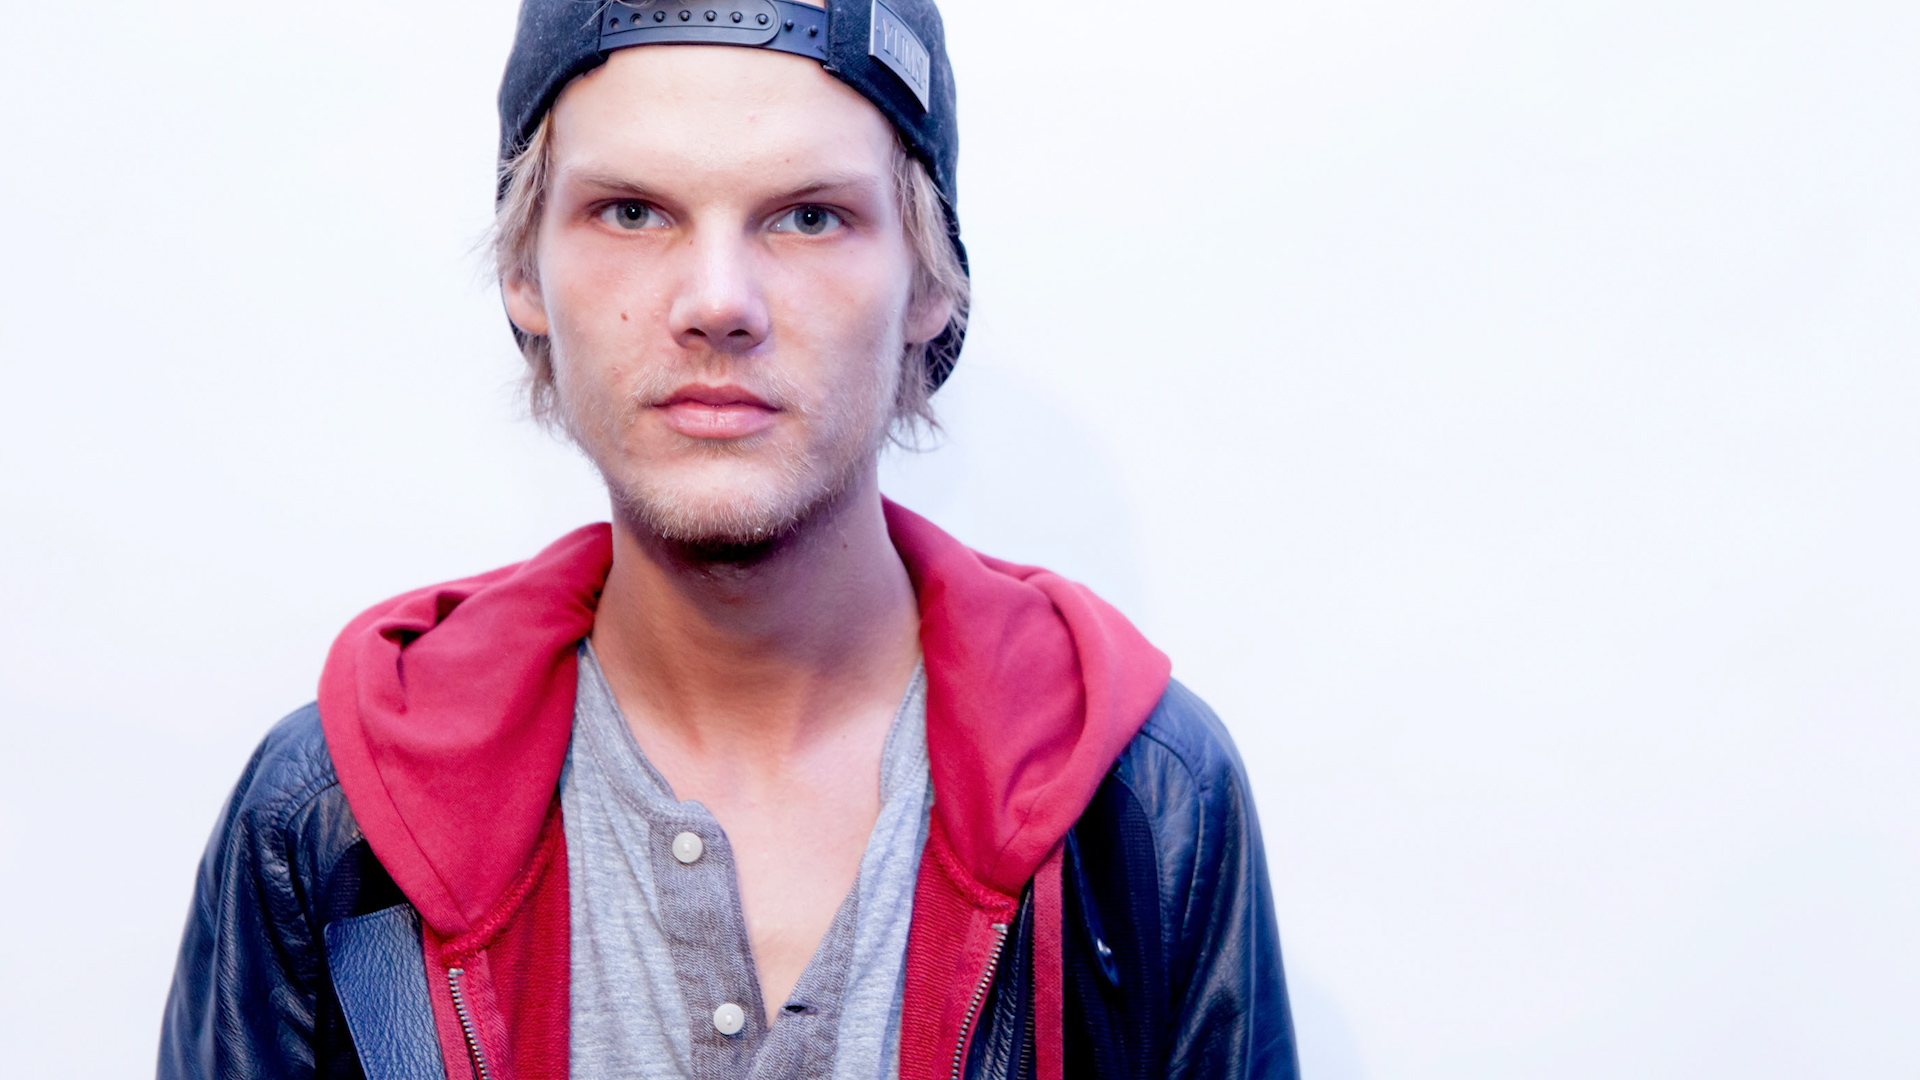 Avicii, Swedish DJ known for electronic dance music, found dead